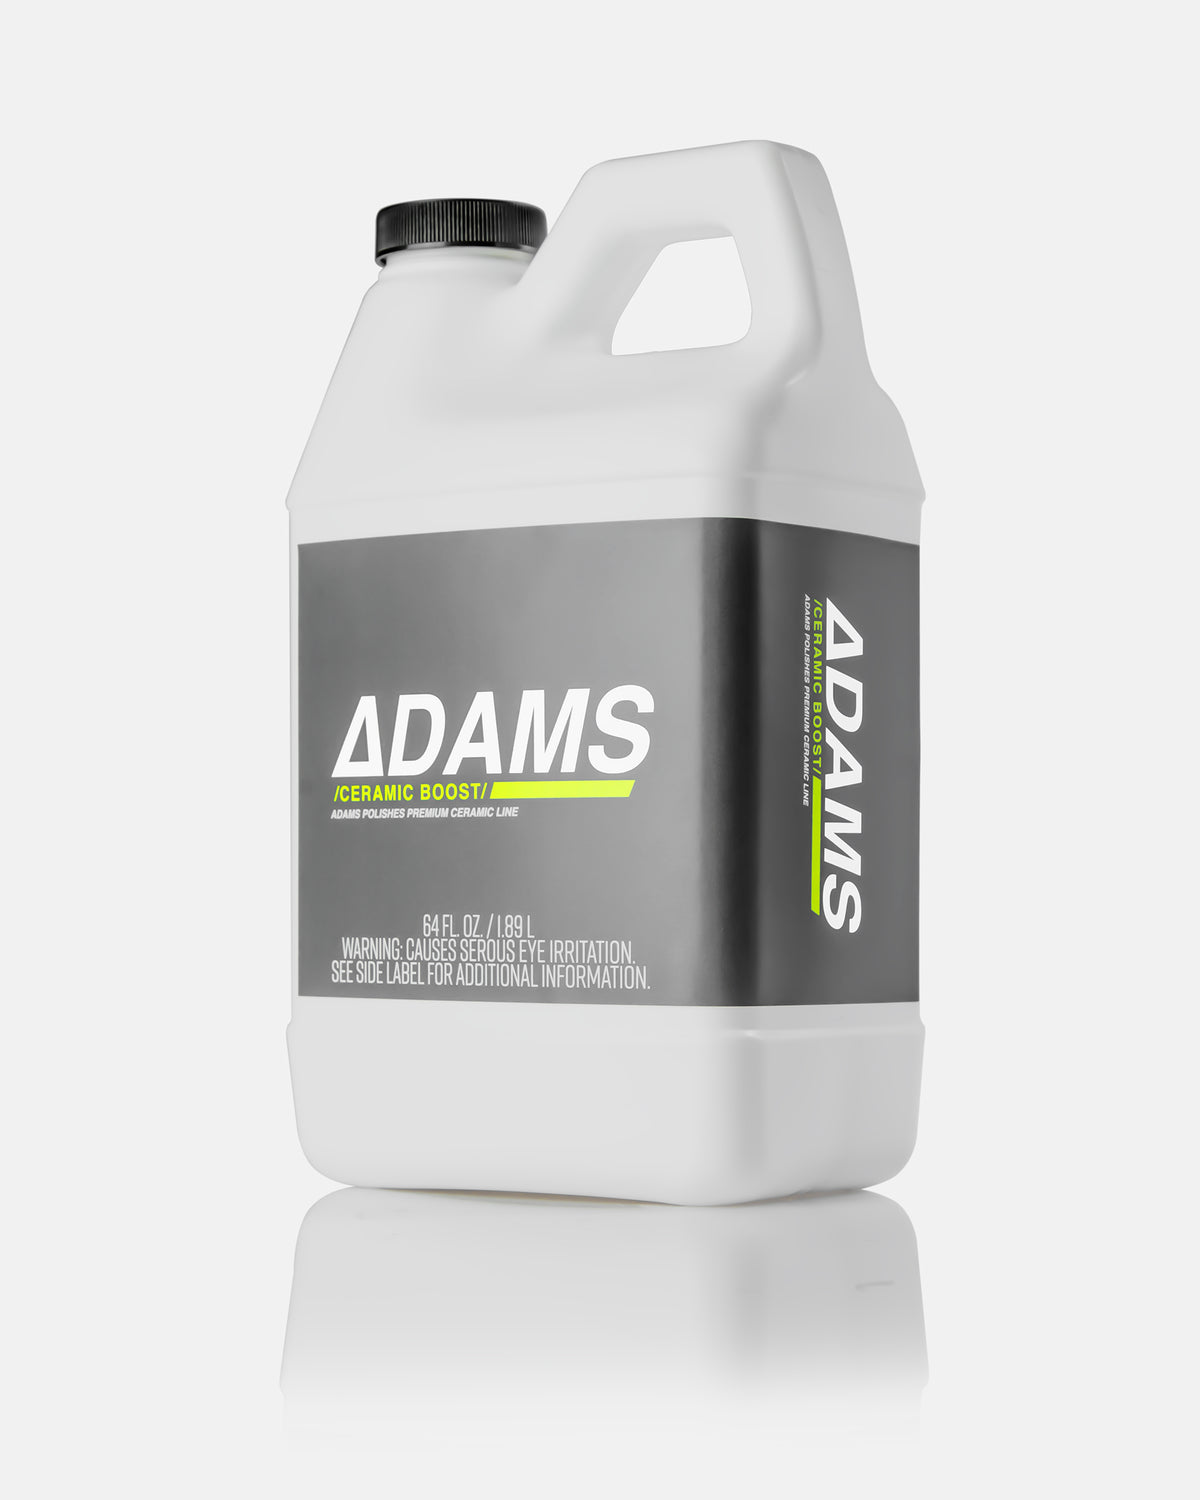 Adam S Ceramic Boost Sio2 Infused Spray Sealant Adam S